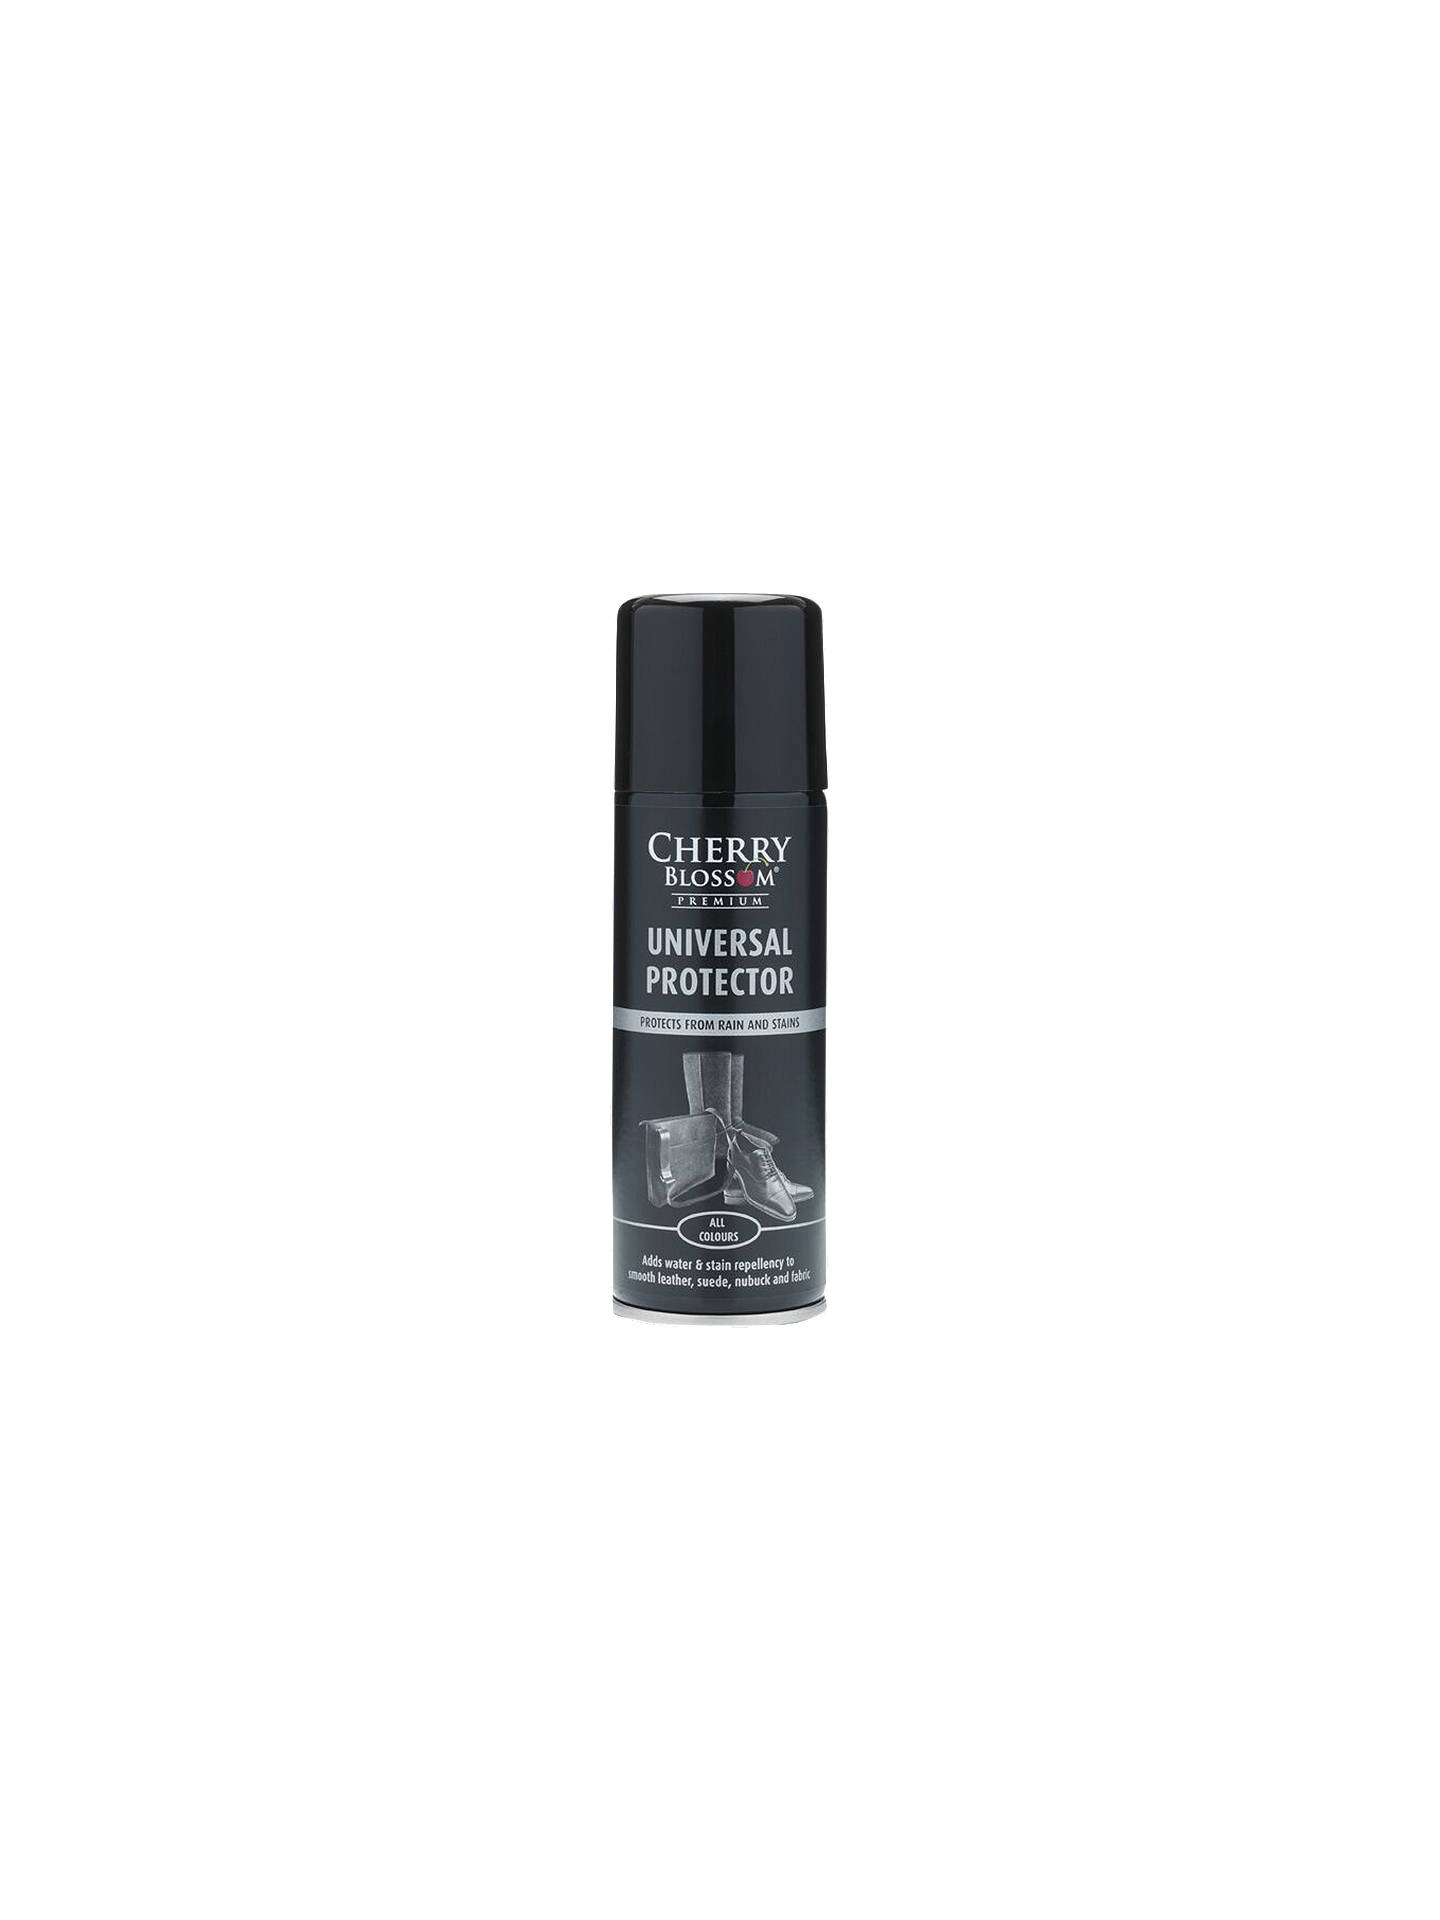 BuyCherry Blossom Universal Protector Spray Online at johnlewis.com